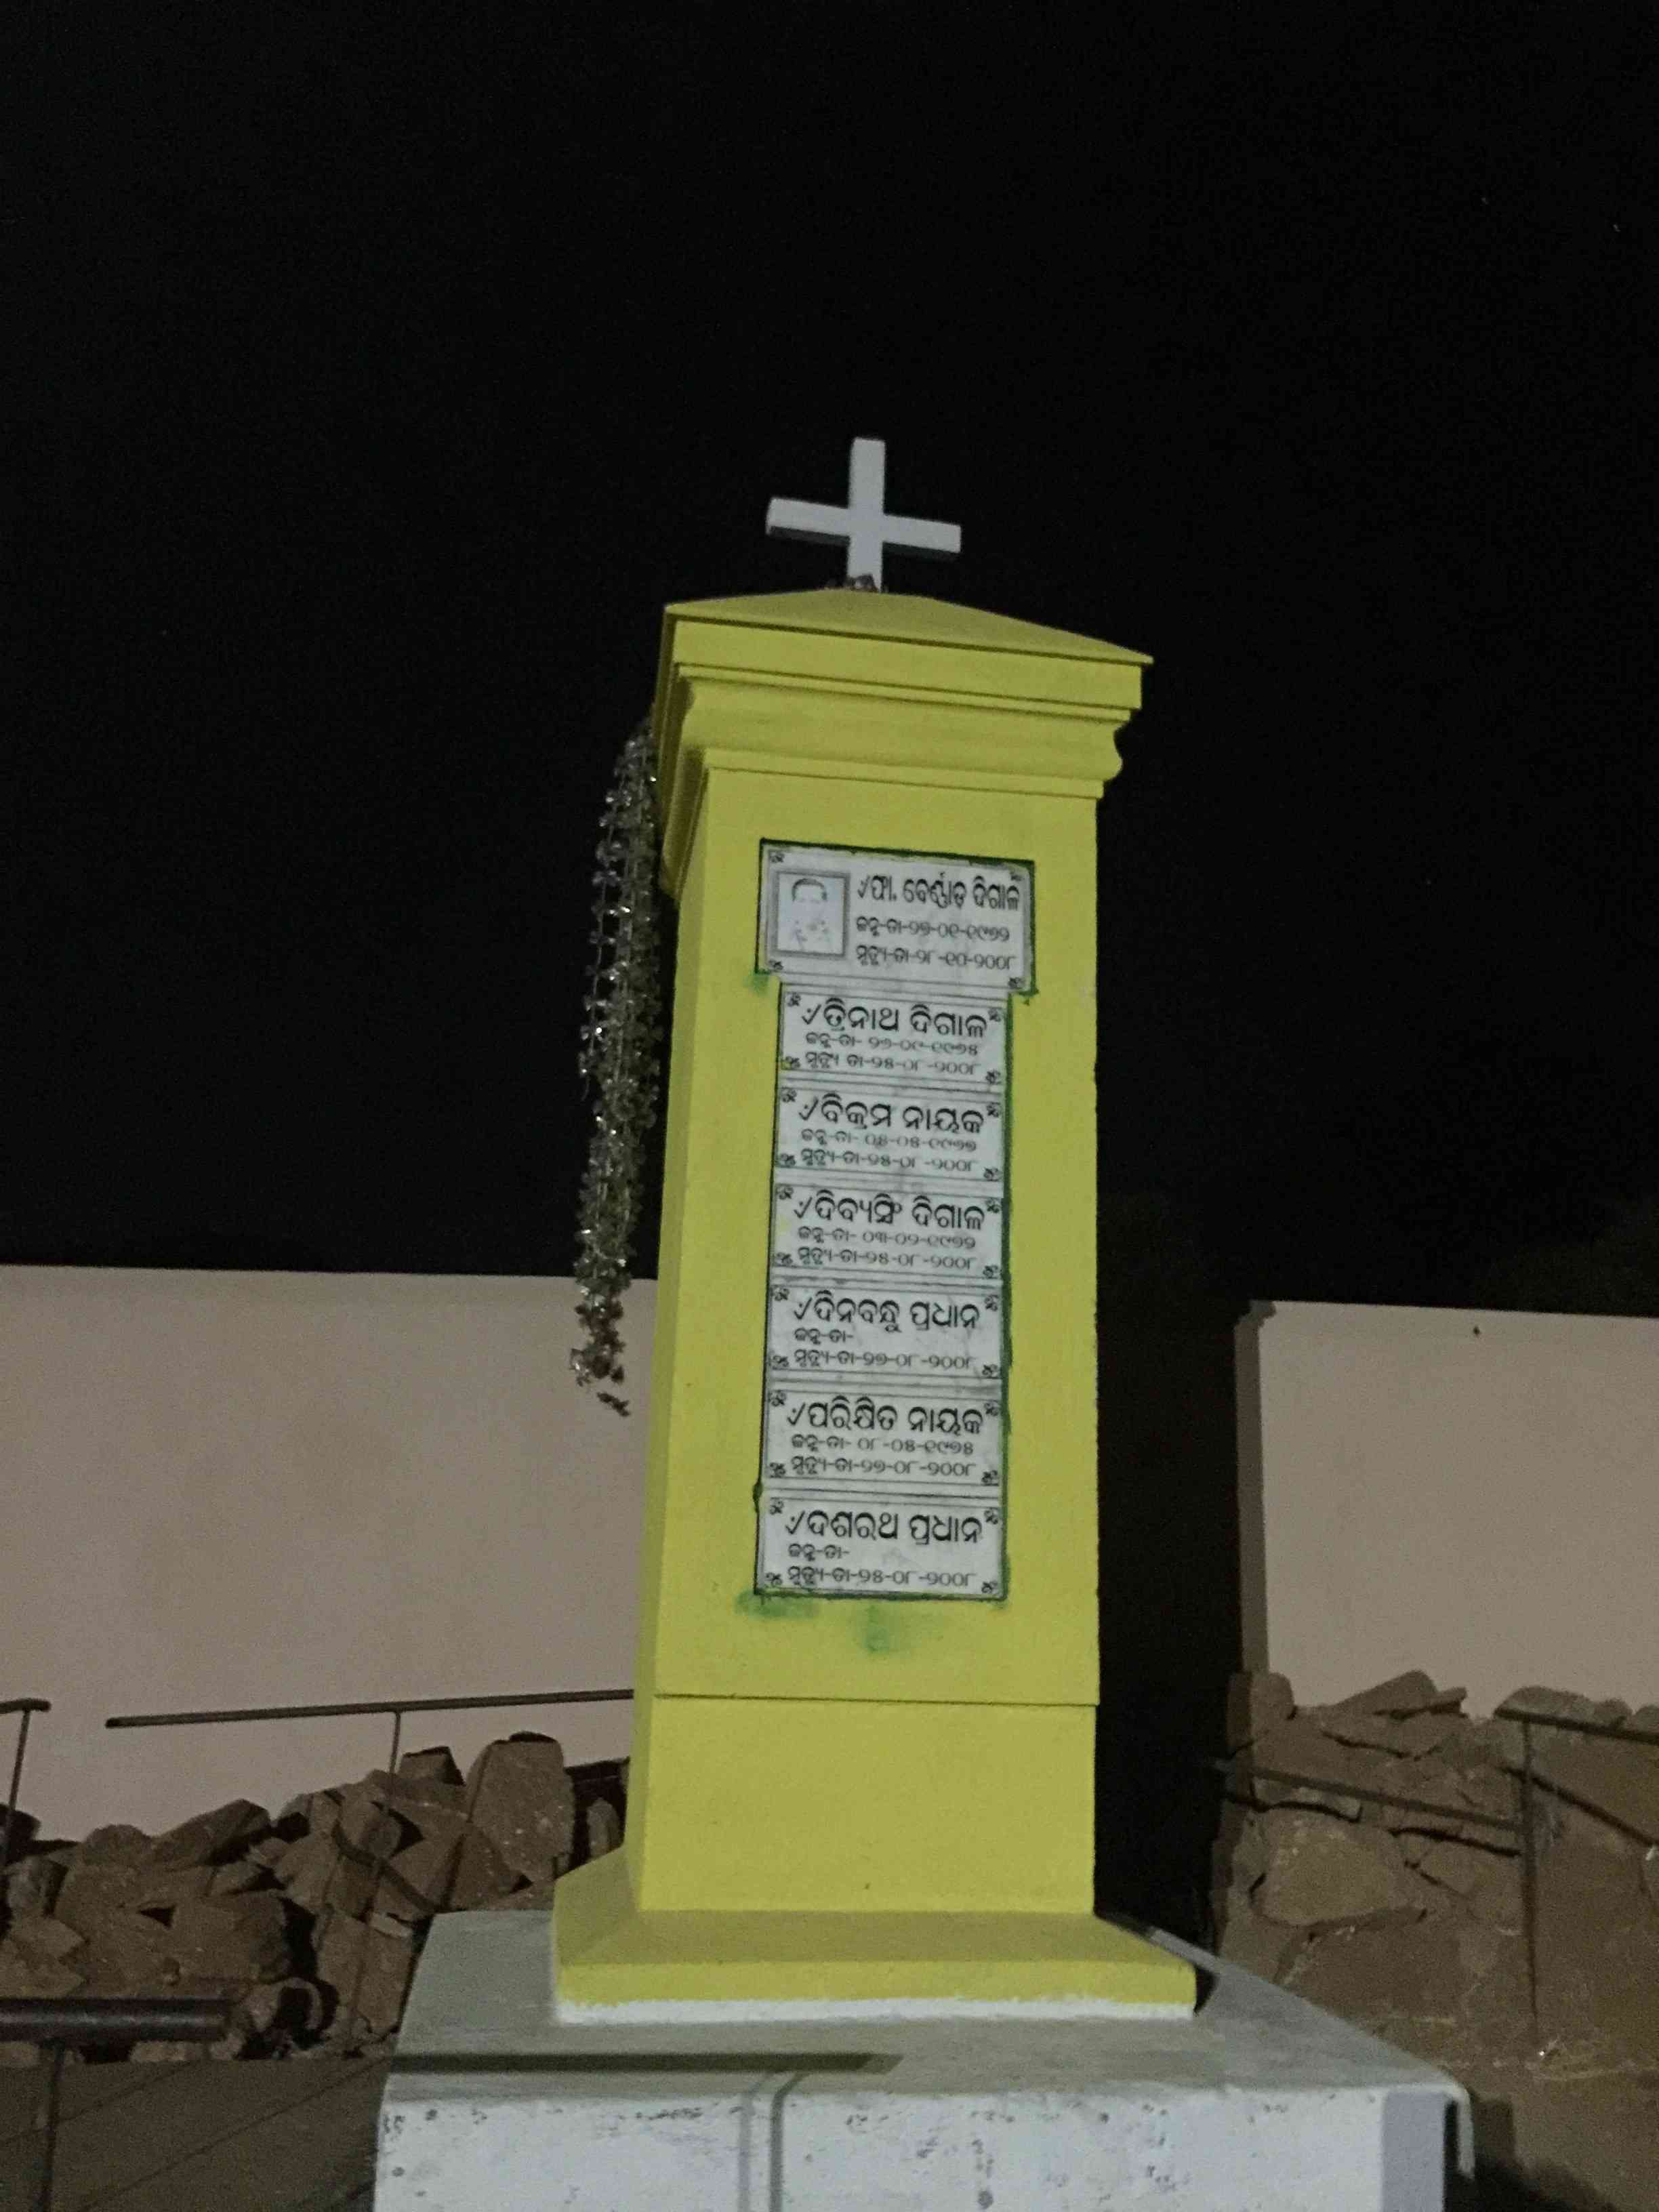 The Catholic church in Tiangia has a simple memorial that lists the names of seven men from the village who died in the 2008 violence. (Credit: Priya Ramani)